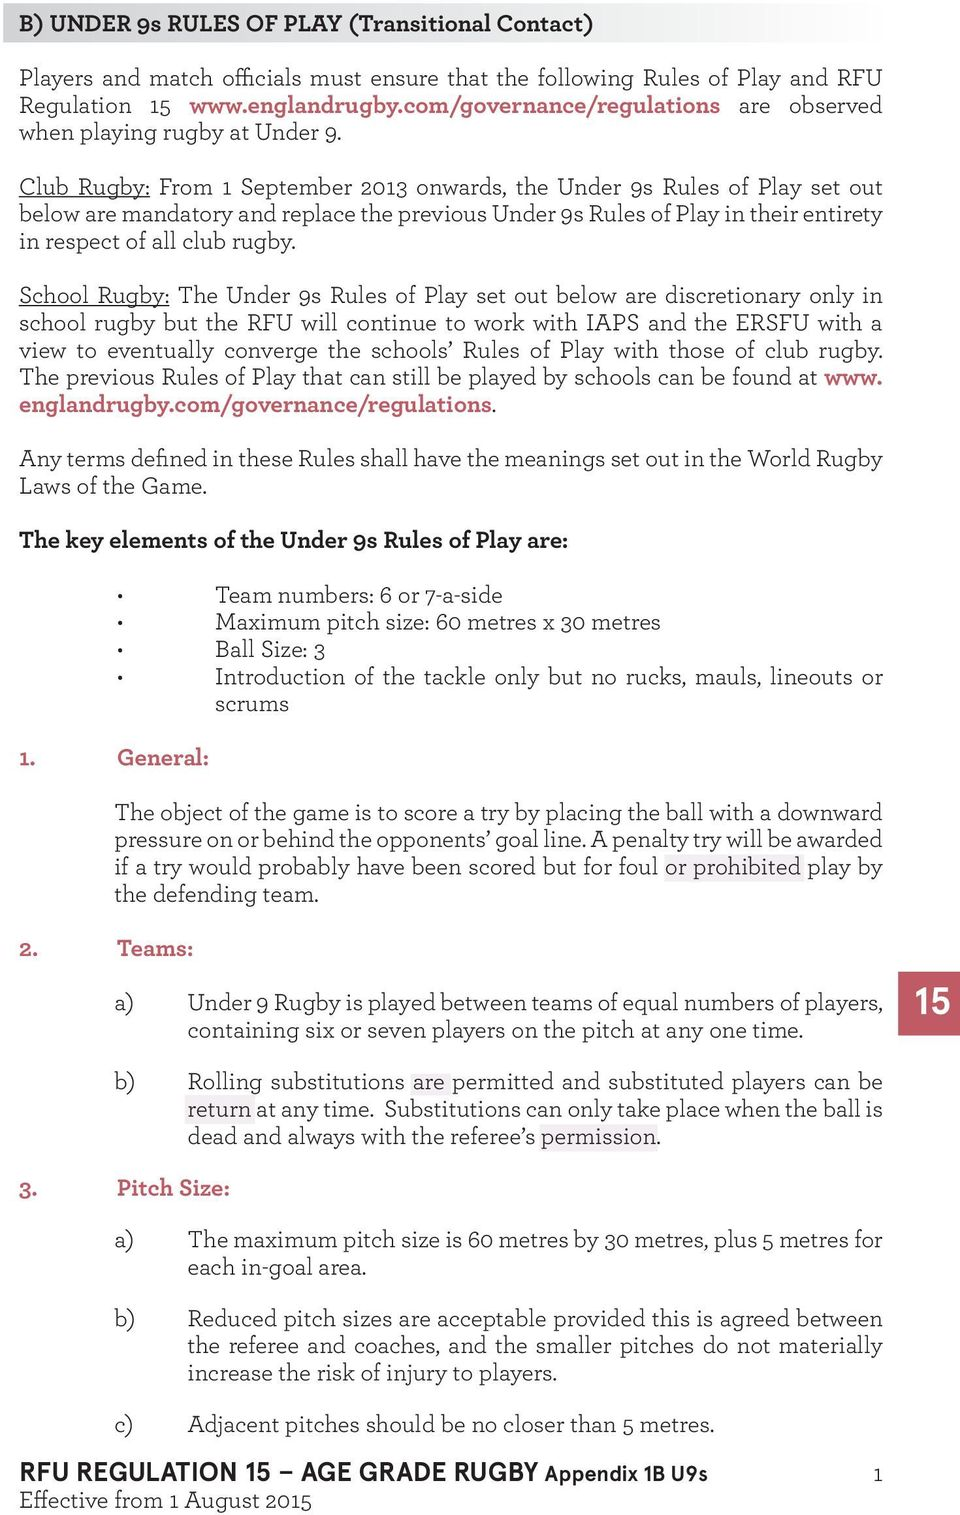 Club Rugby: From September 203 onwards, the Under 9s Rules of Play set out below are mandatory and replace the previous Under 9s Rules of Play in their entirety in respect of all club rugby.